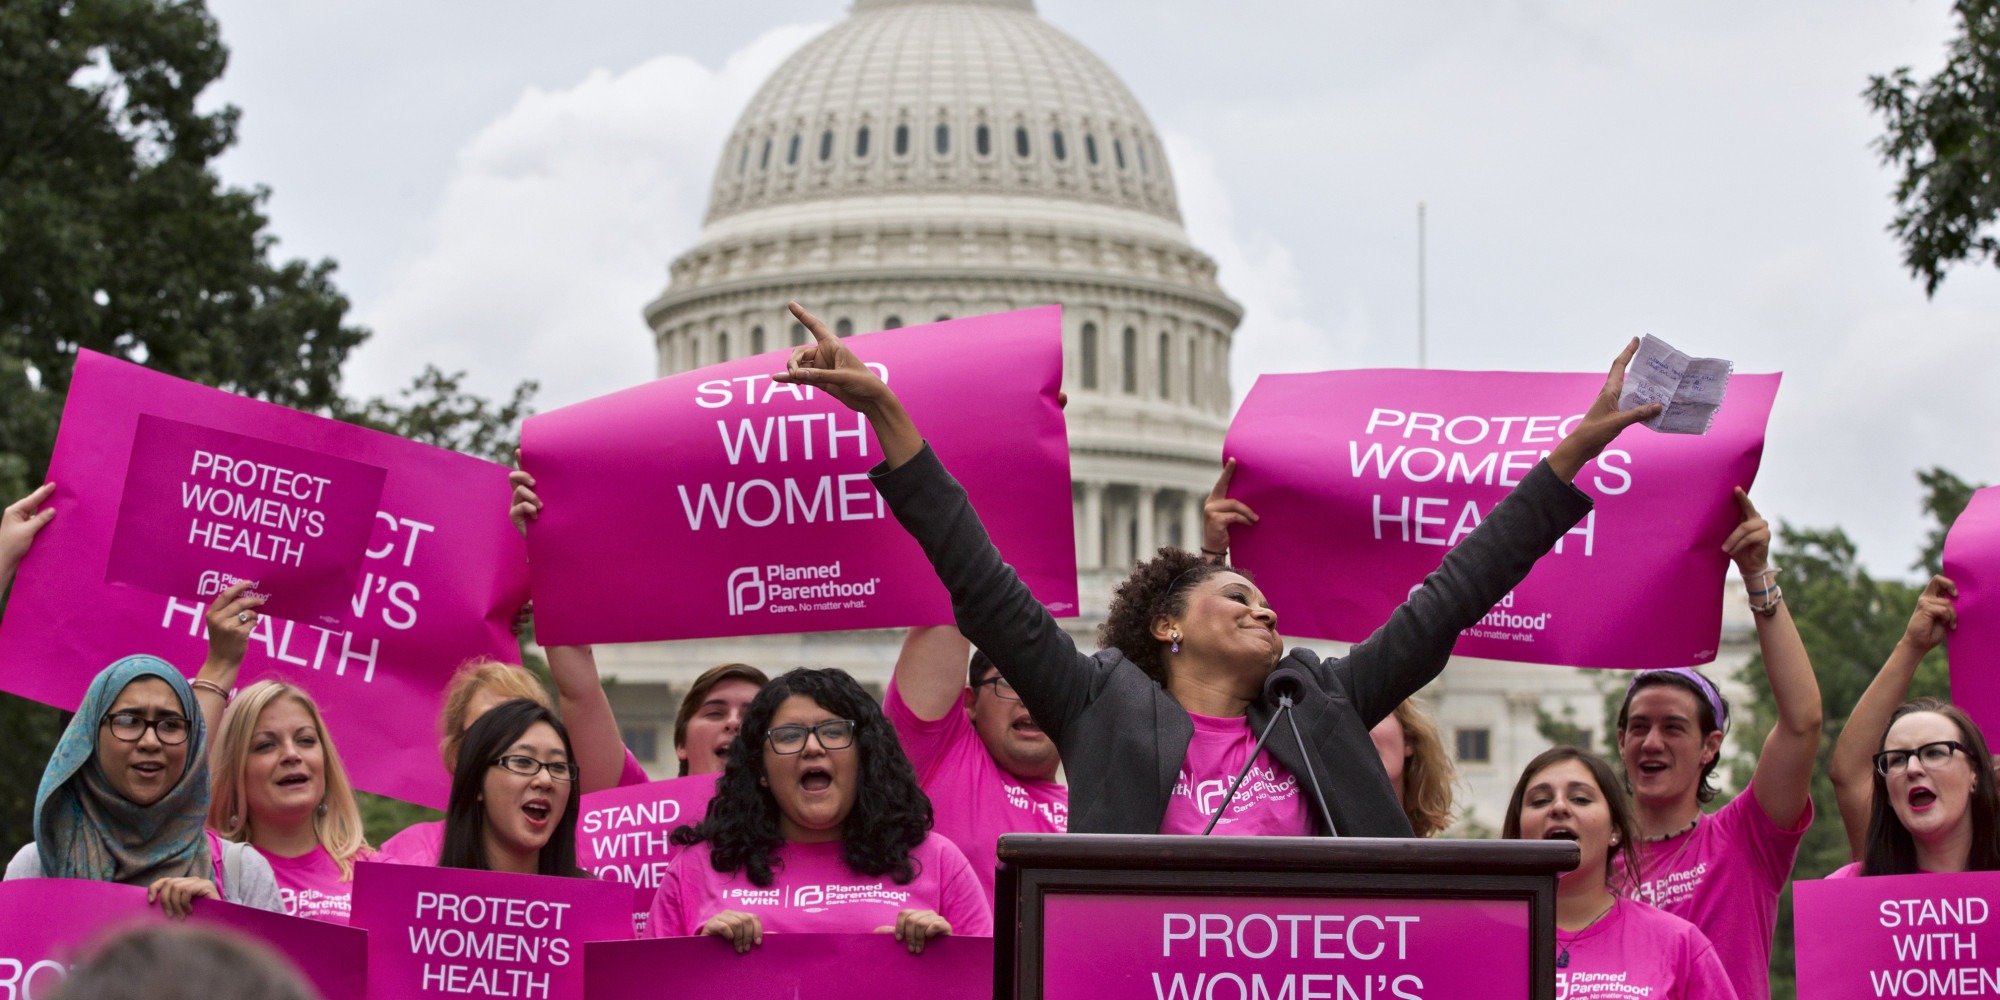 Trump signs law letting states block funds to Planned Parenthood